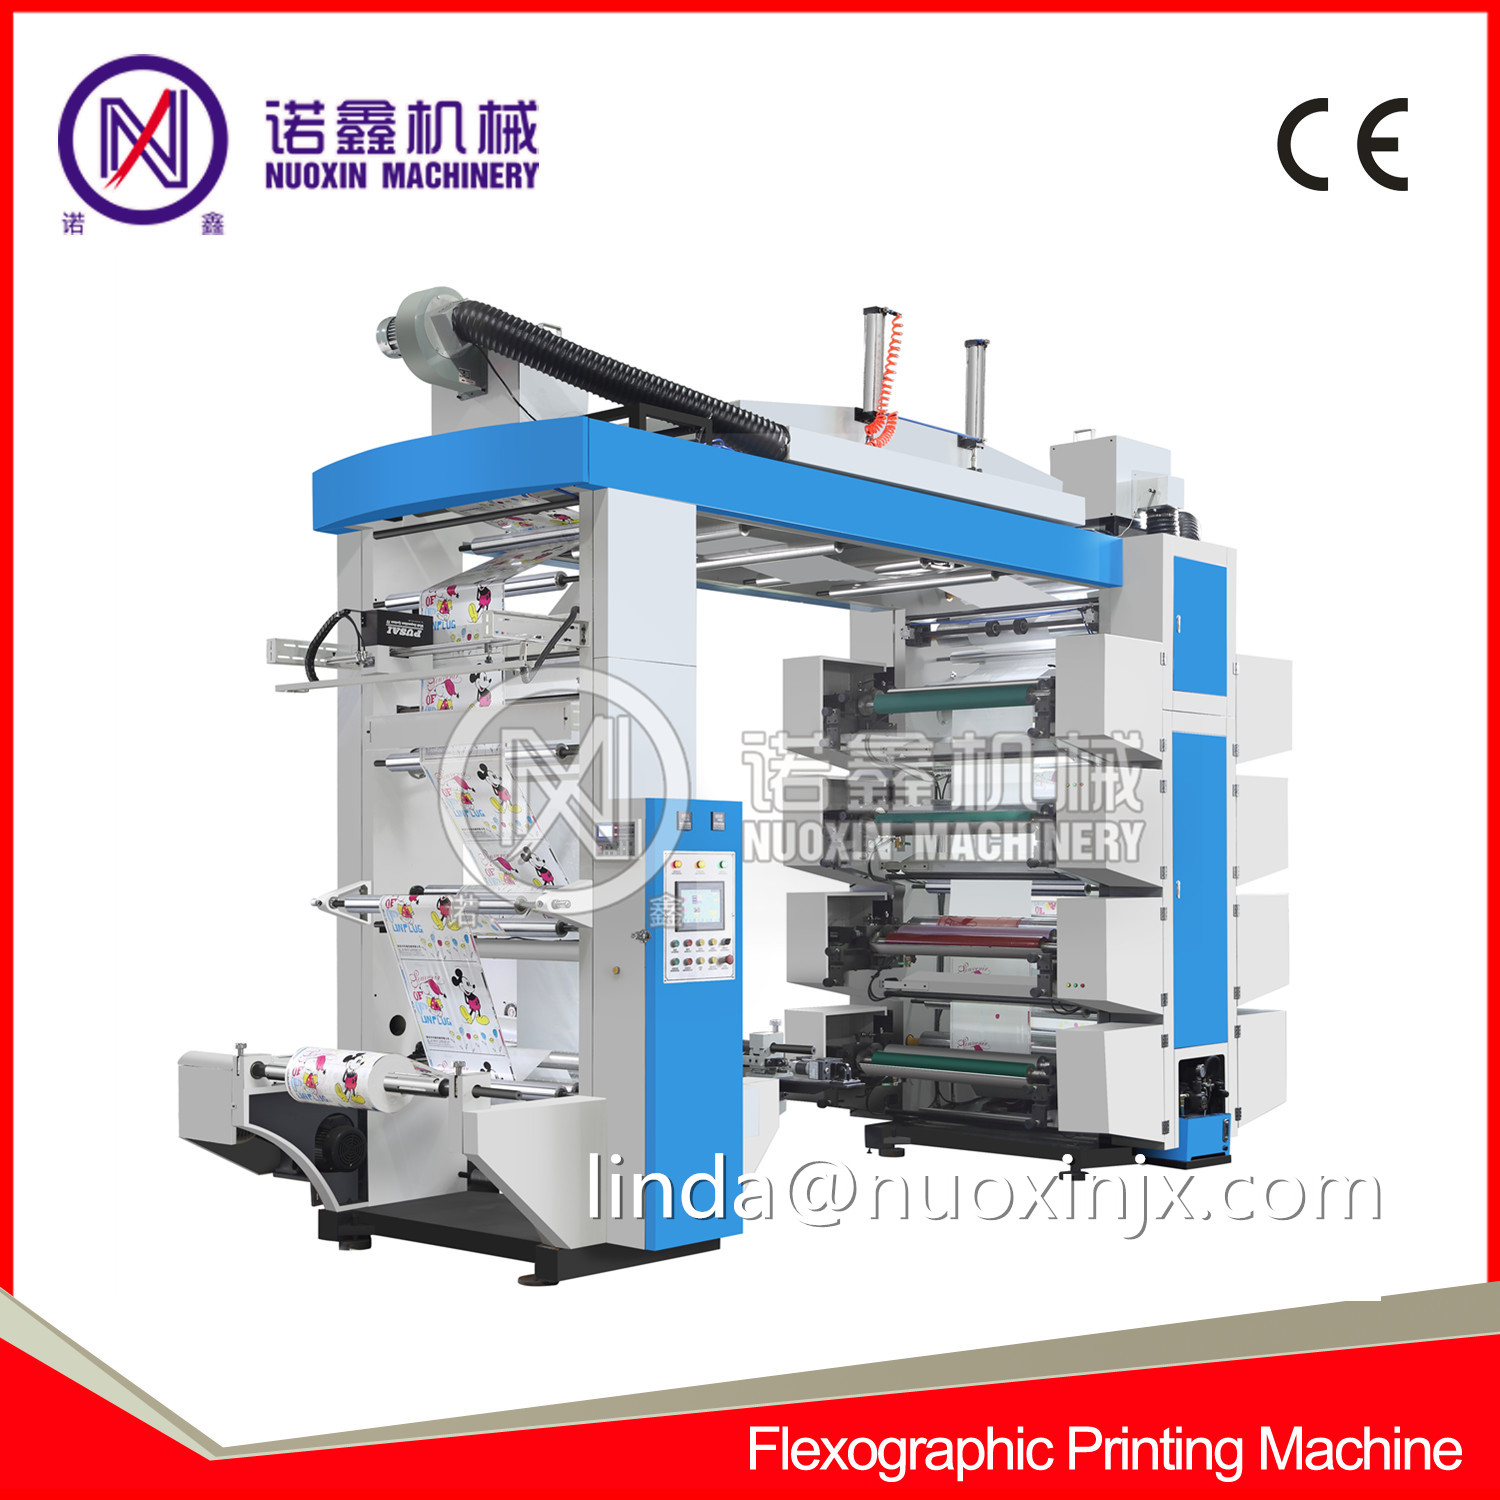 NX8-600 8Color Flexographic Printing Machine